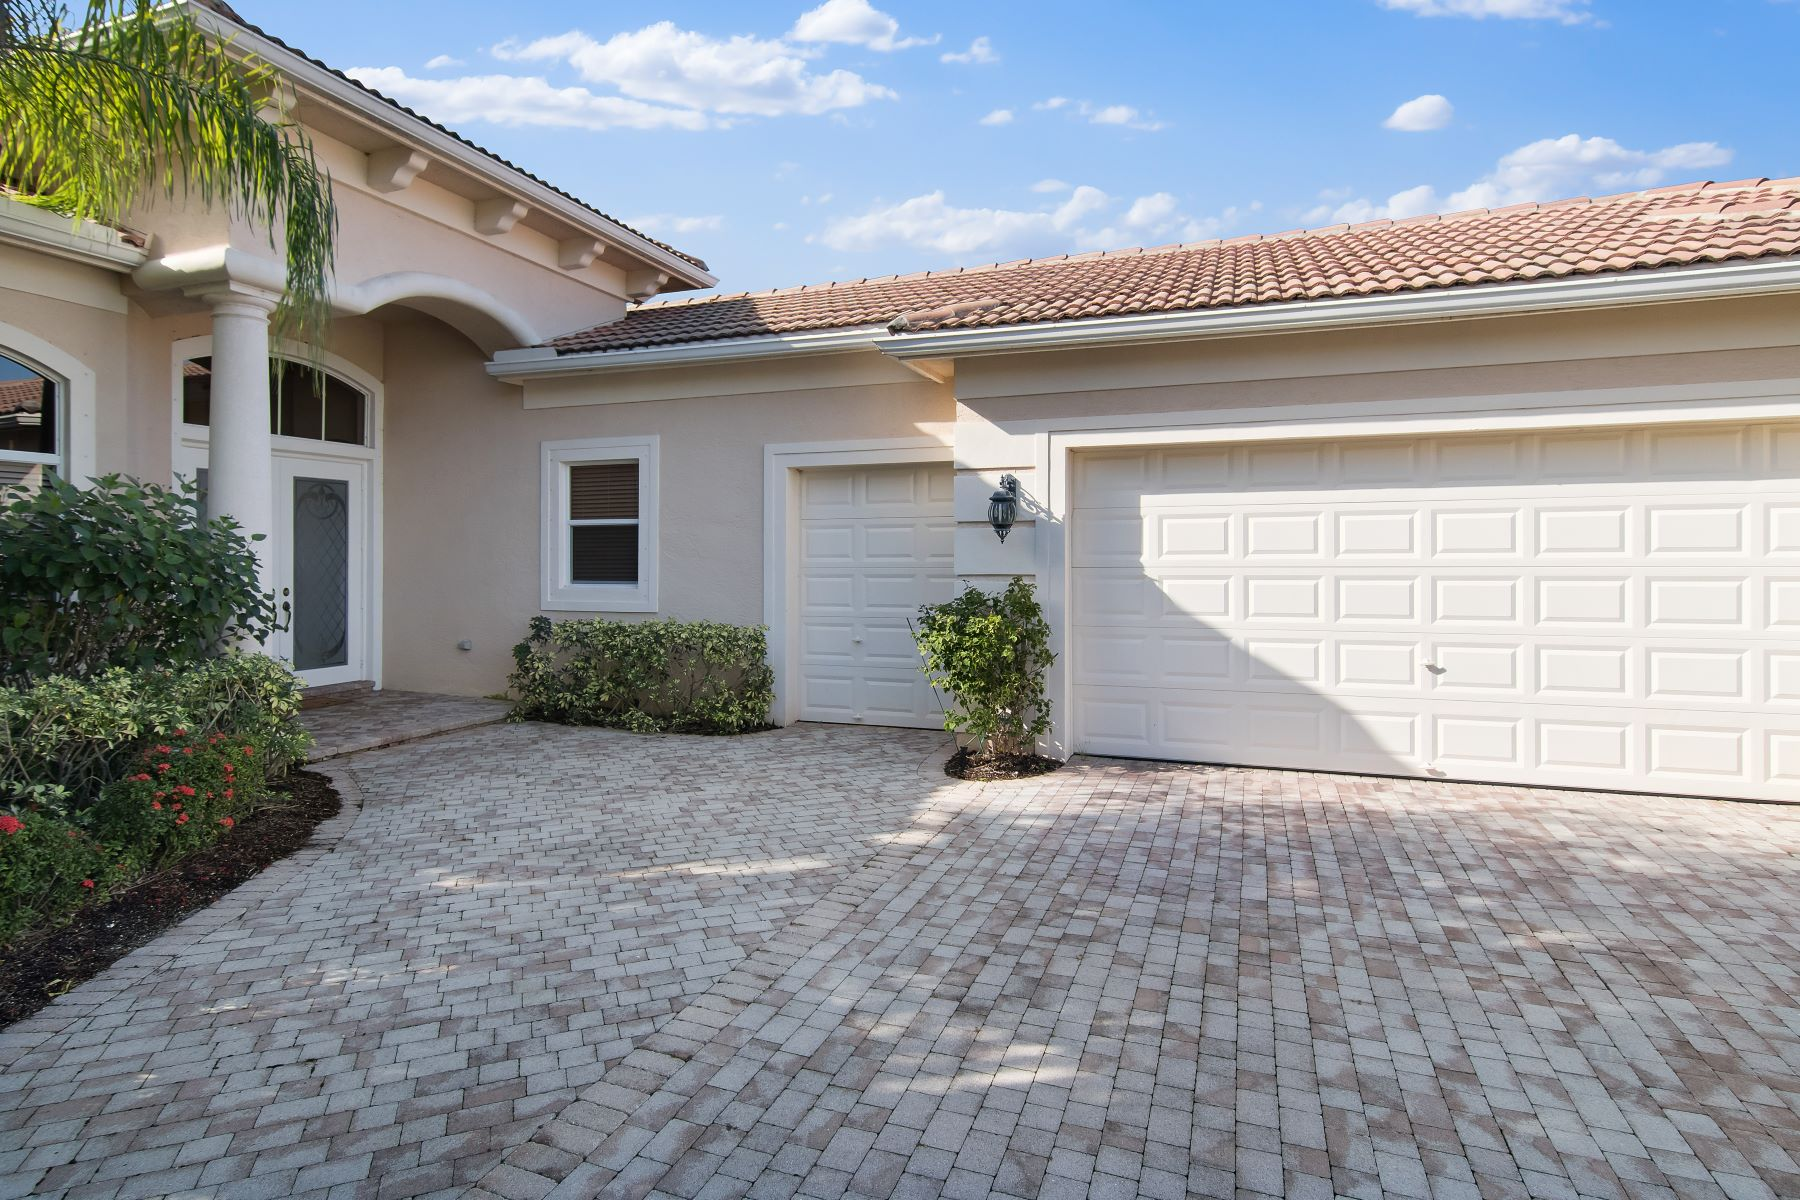 Additional photo for property listing at 128 Porto Vecchio Way 128 Porto Vecchio Way Palm Beach Gardens, Florida 33418 Hoa Kỳ